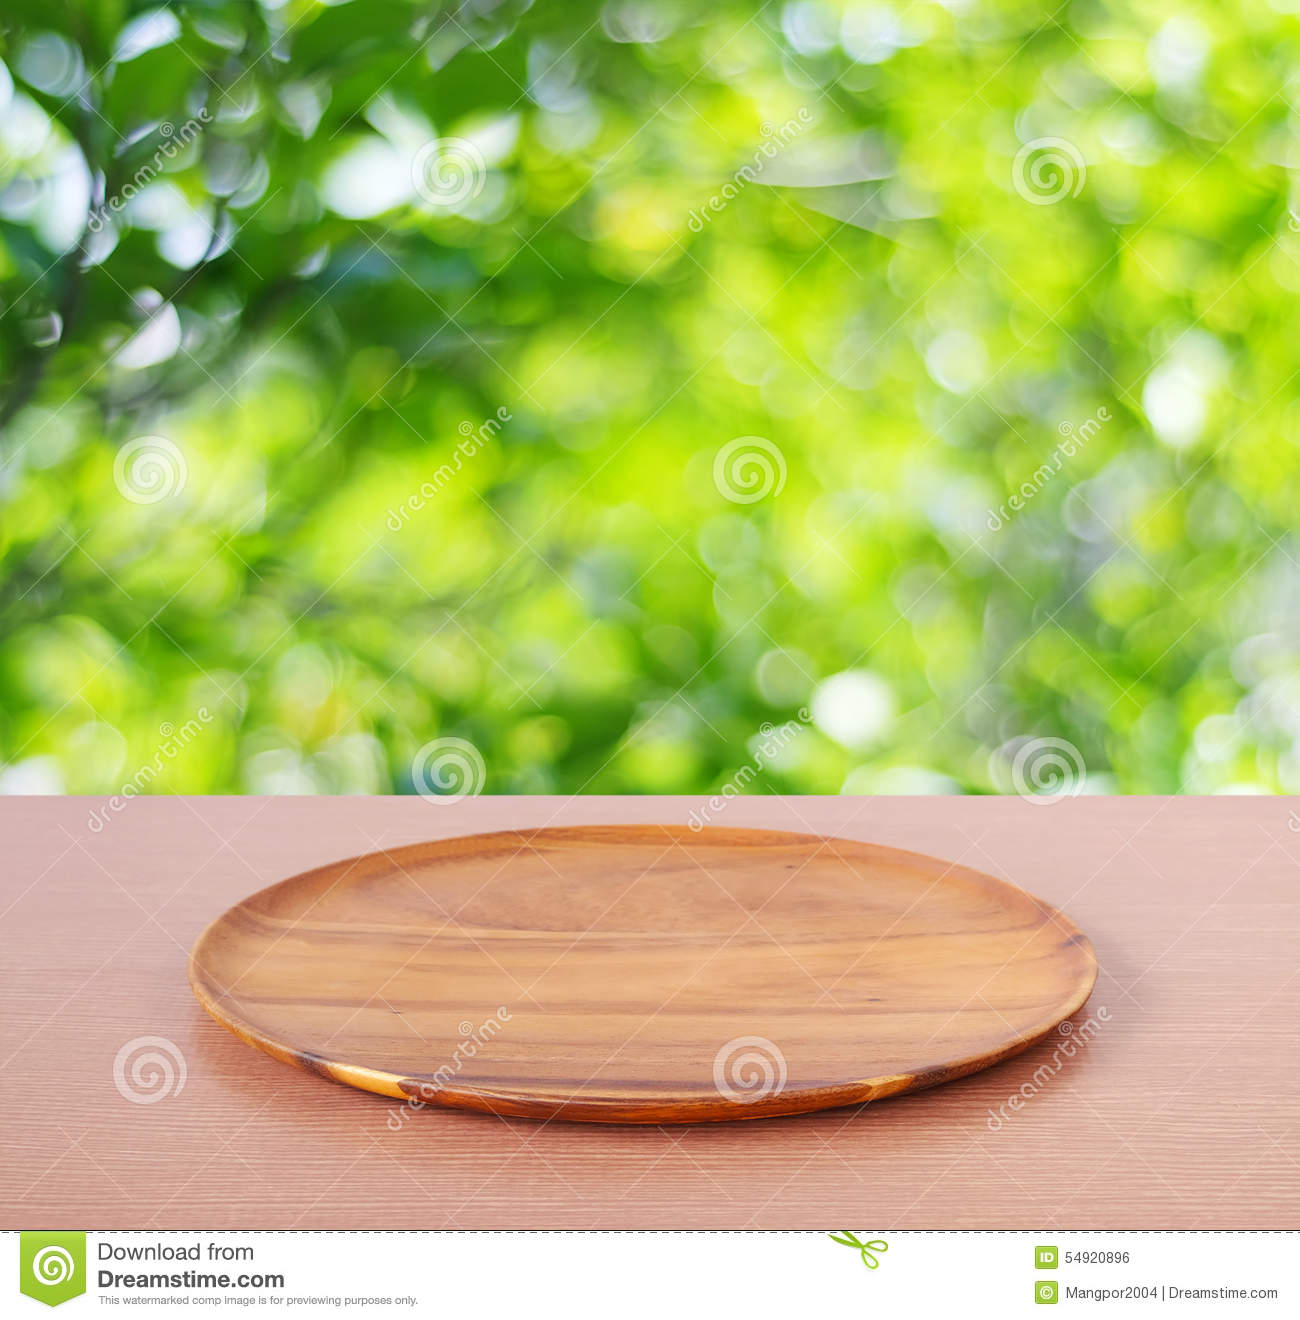 Empty Round Wooden Tray On Table Over Blur Tree Background